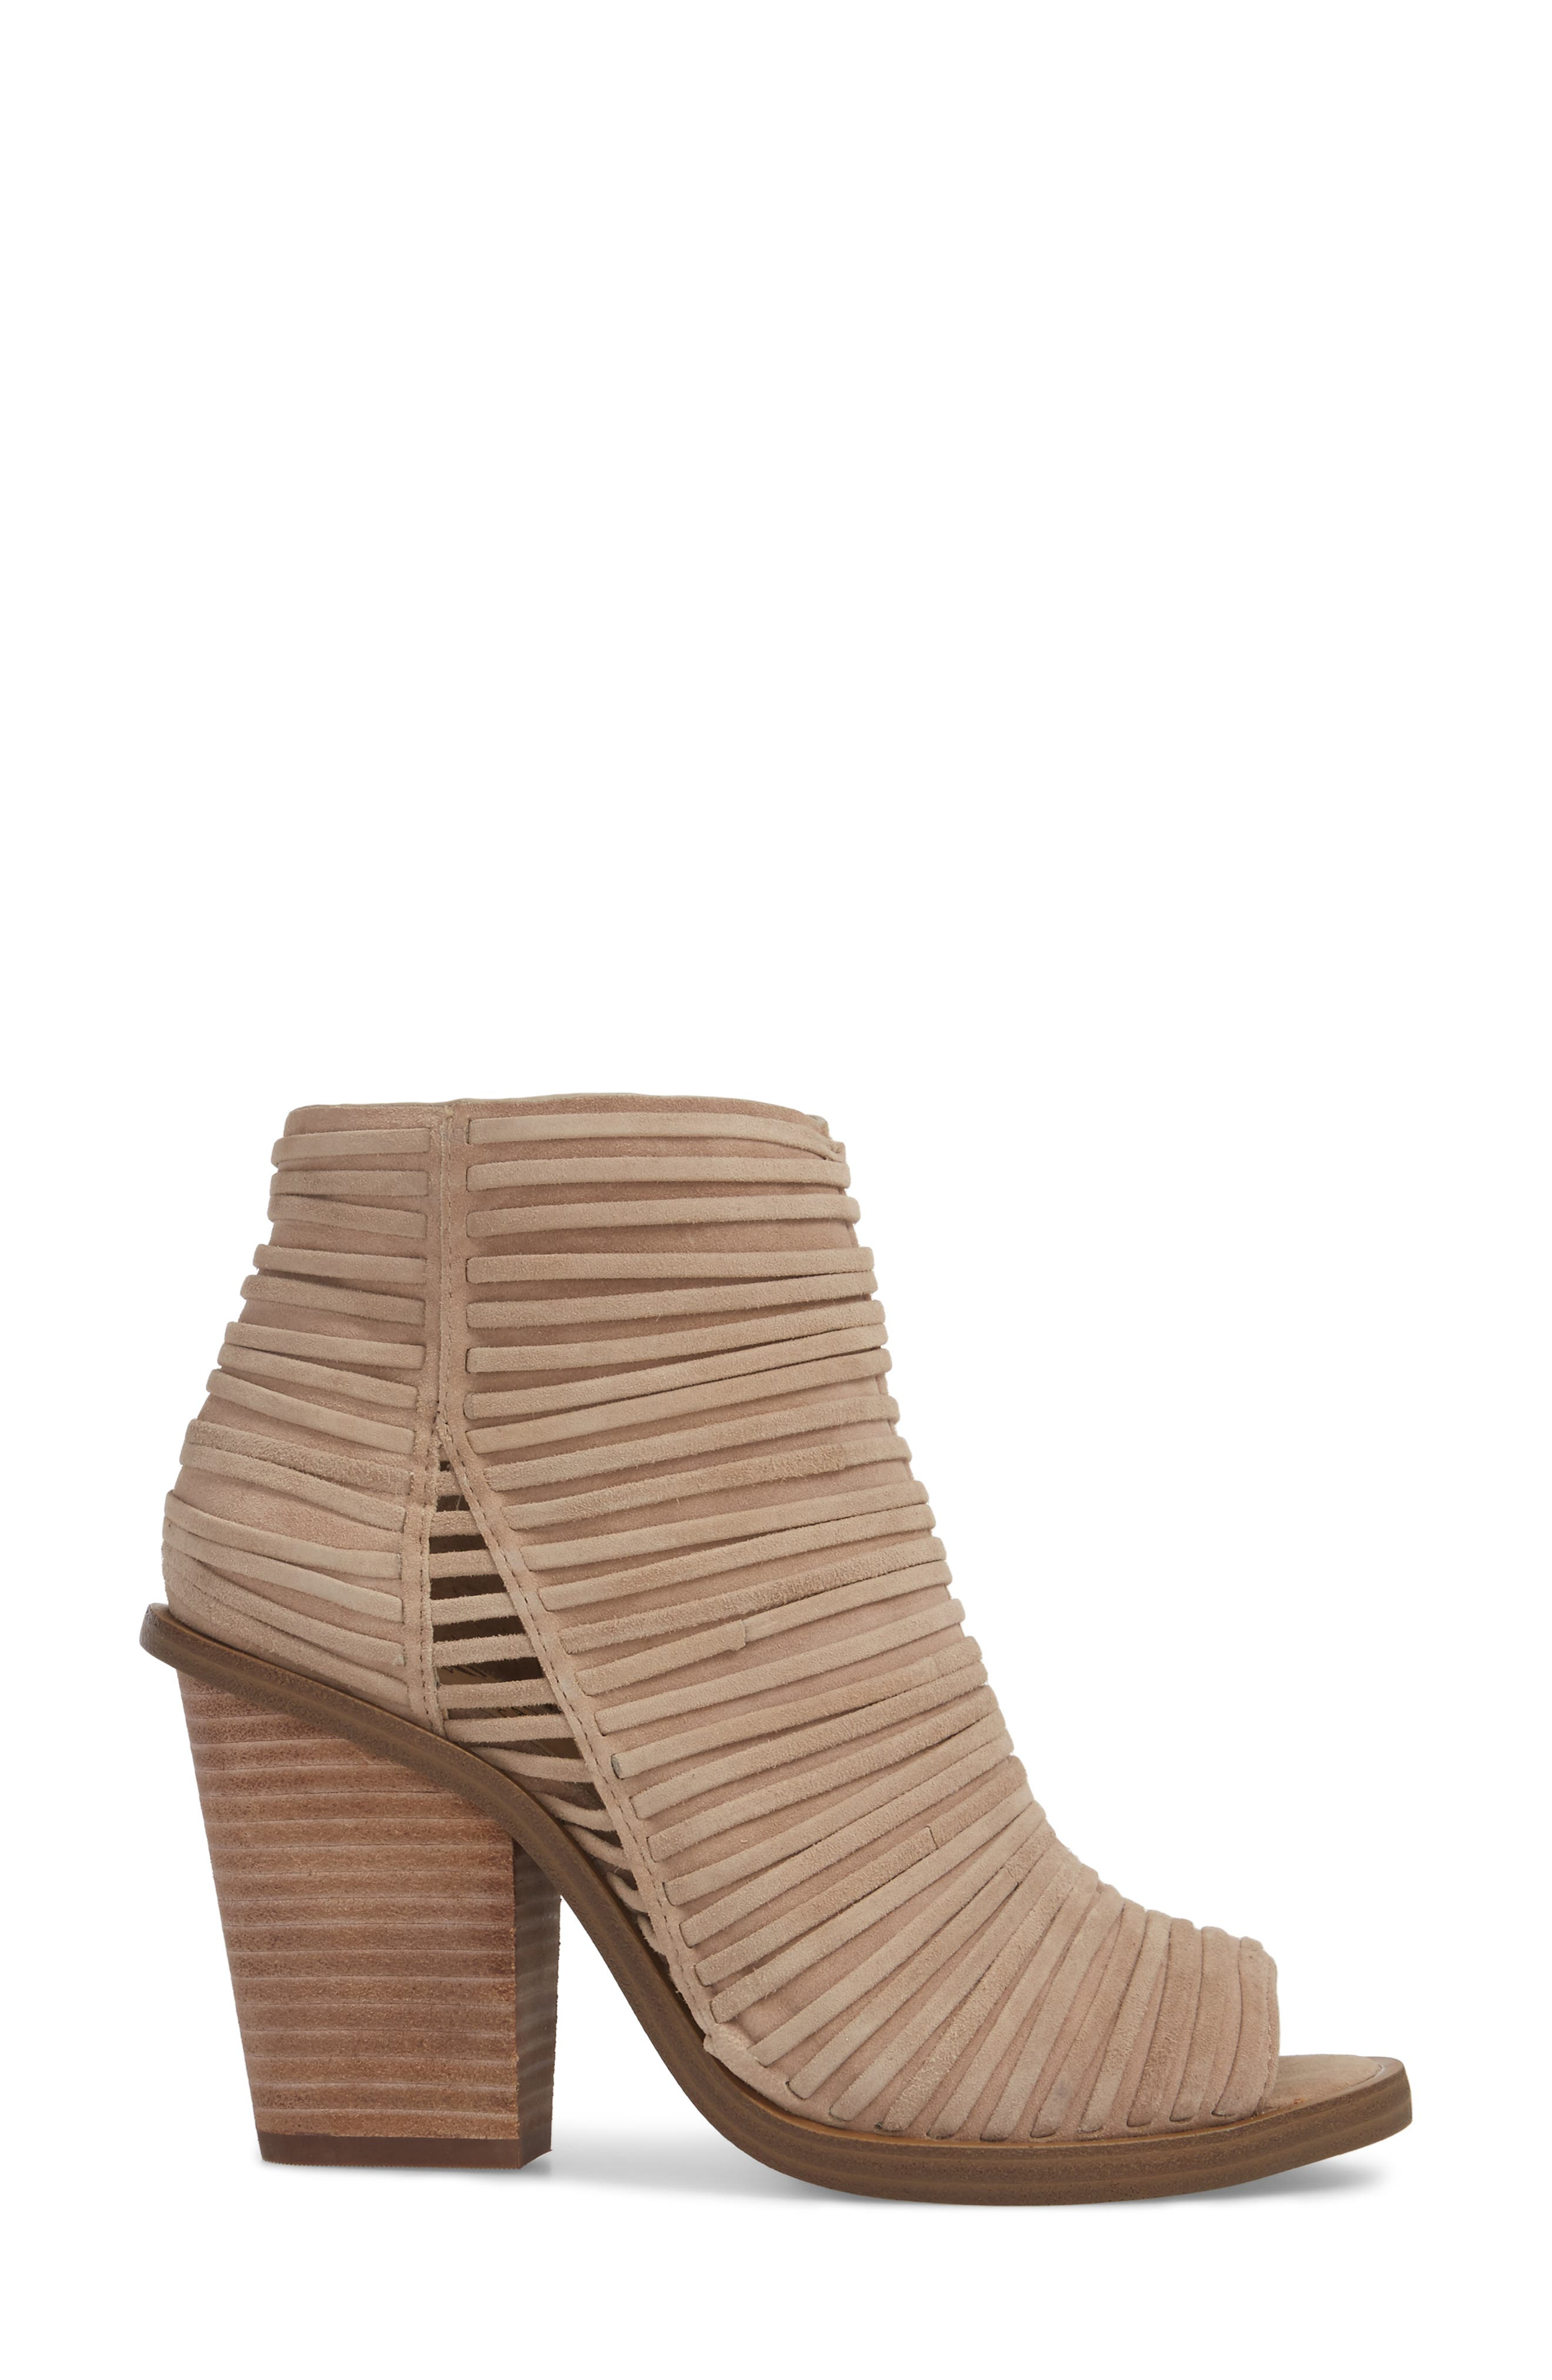 Feteena Bootie,                             Alternate thumbnail 3, color,                             FRENCH TAUPE SUEDE